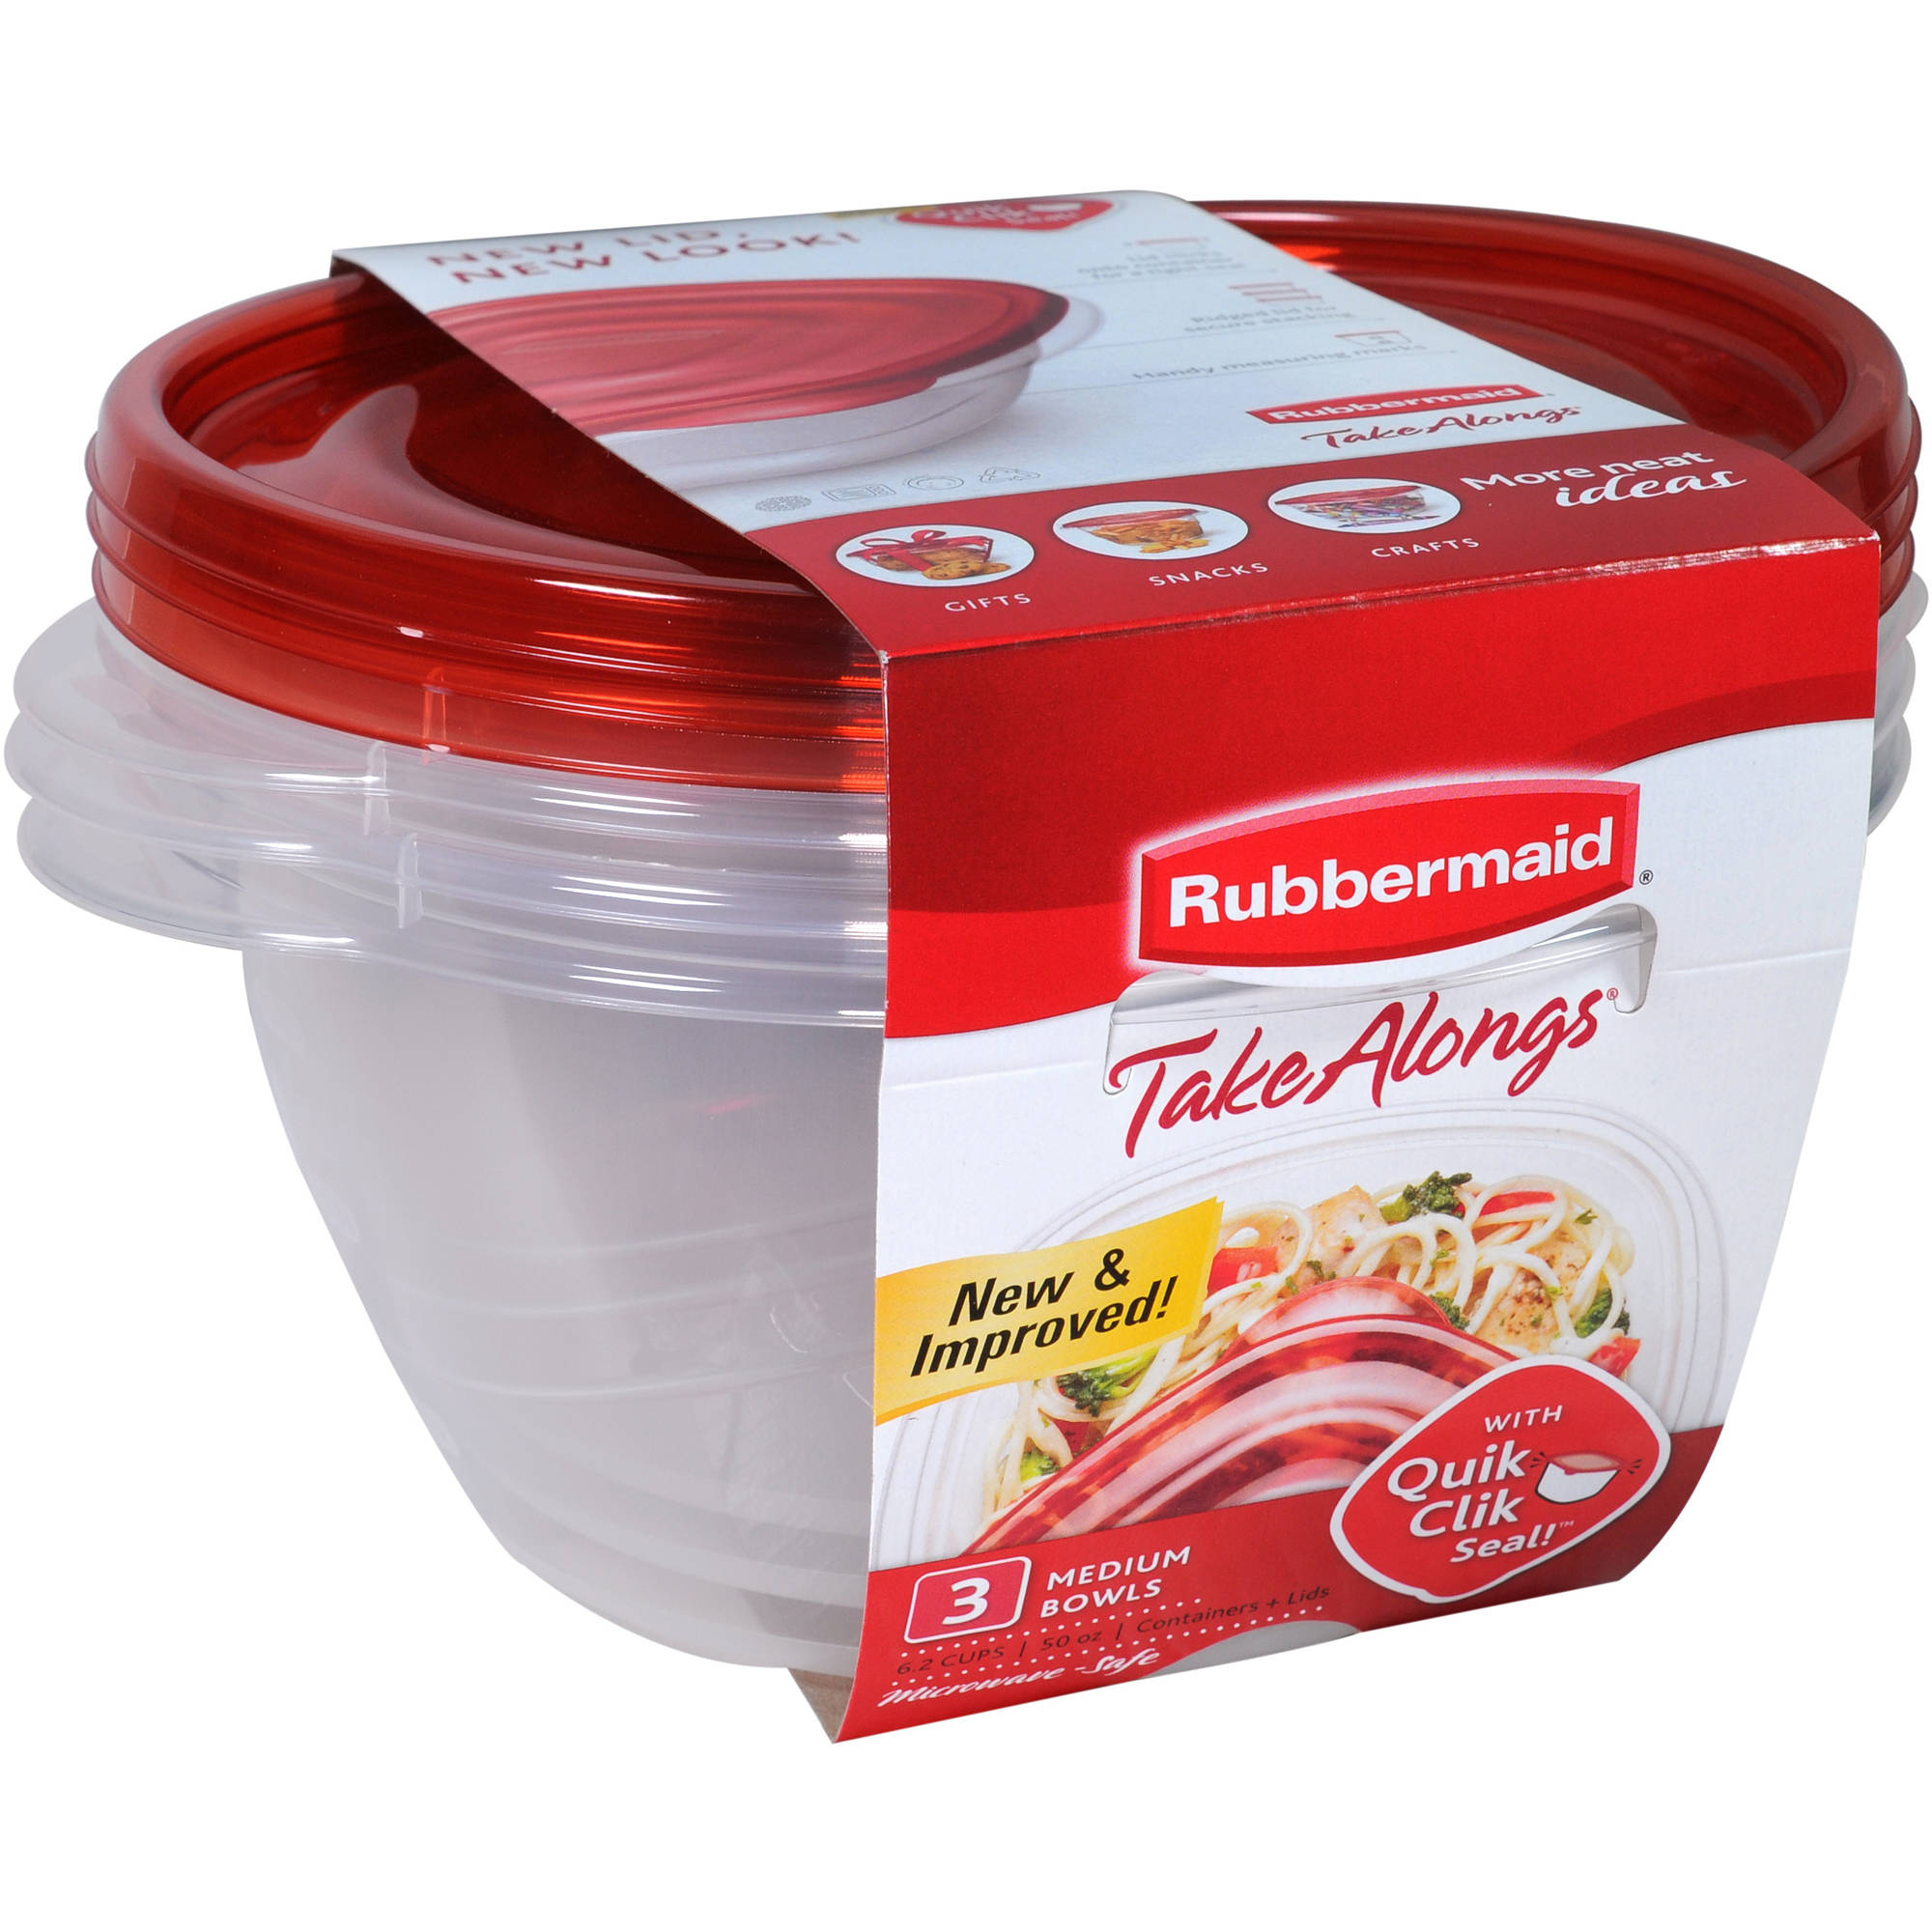 Rubbermaid TakeAlongs Medium Food Storage Bowls, 3 count